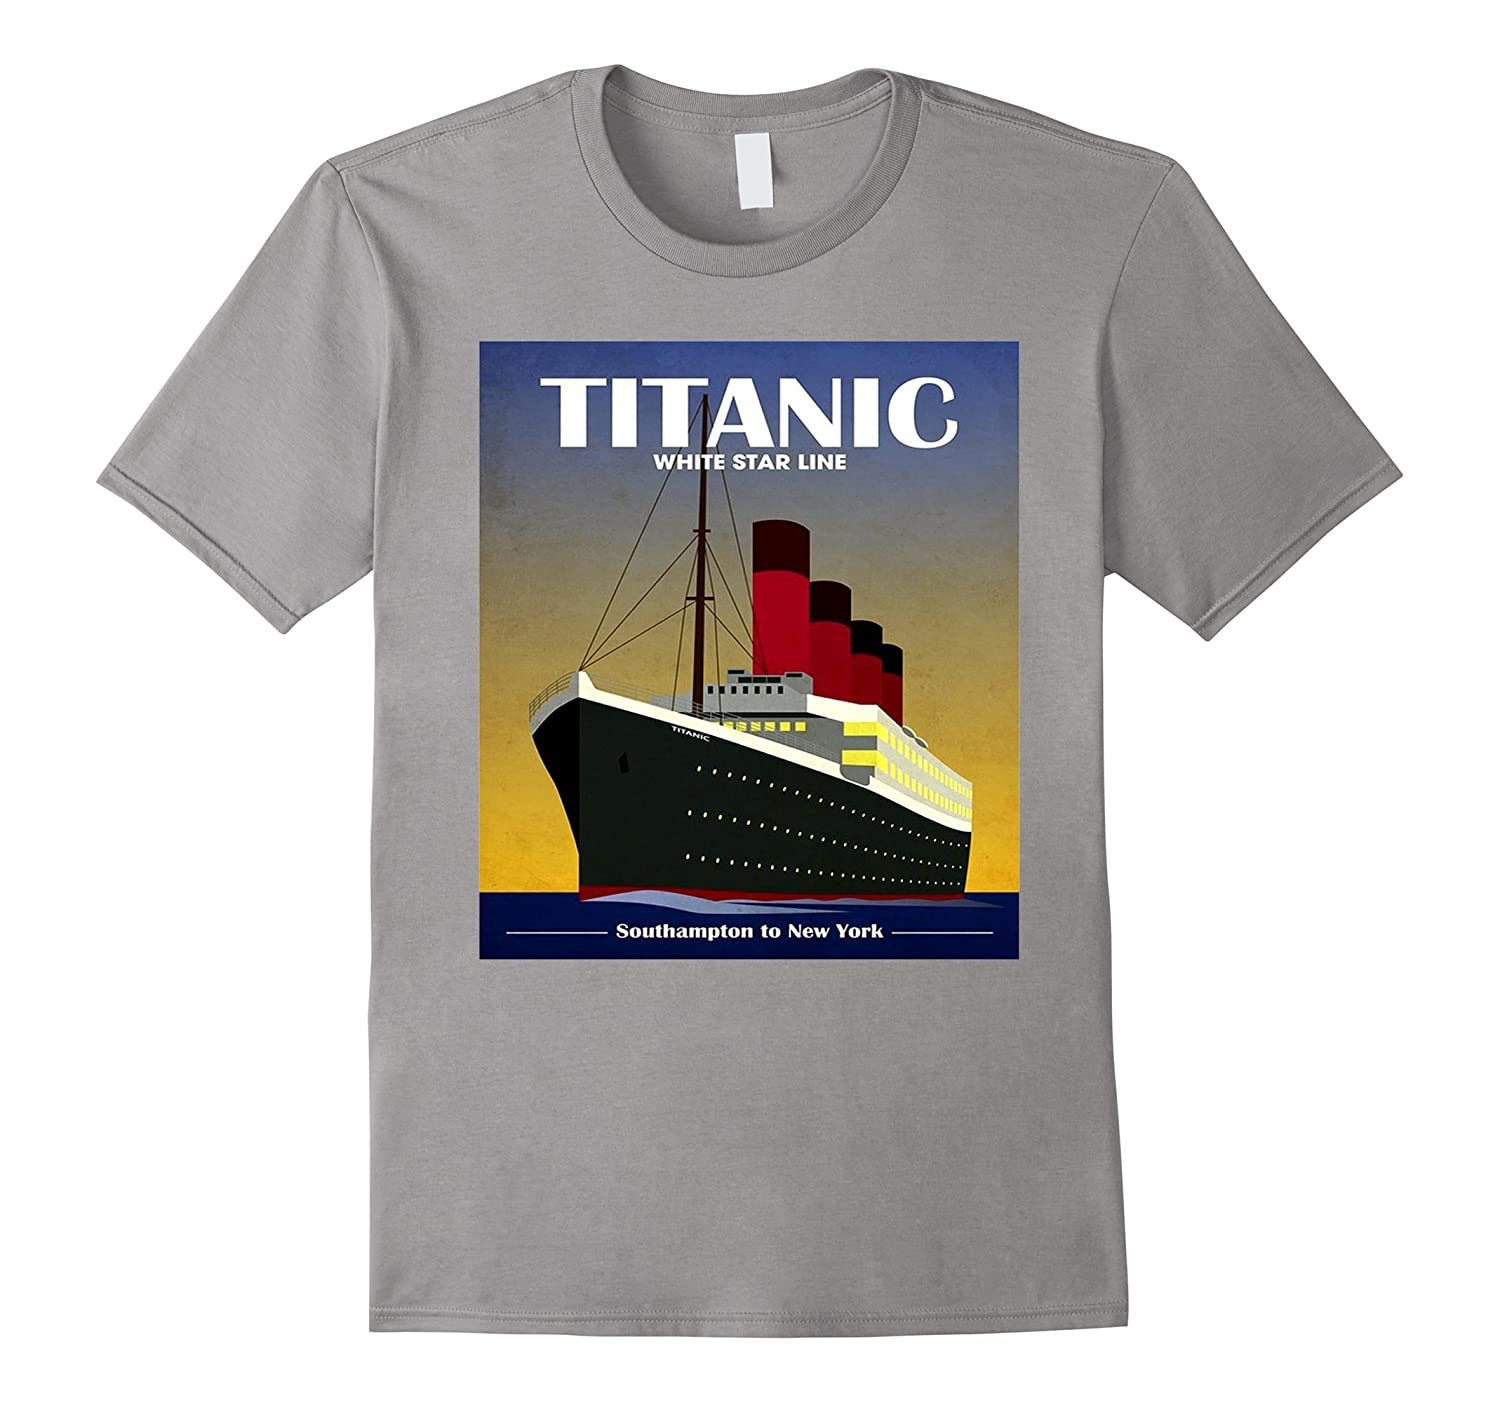 Titanic White Star Line Vintage Poster Tee Shirt-TH